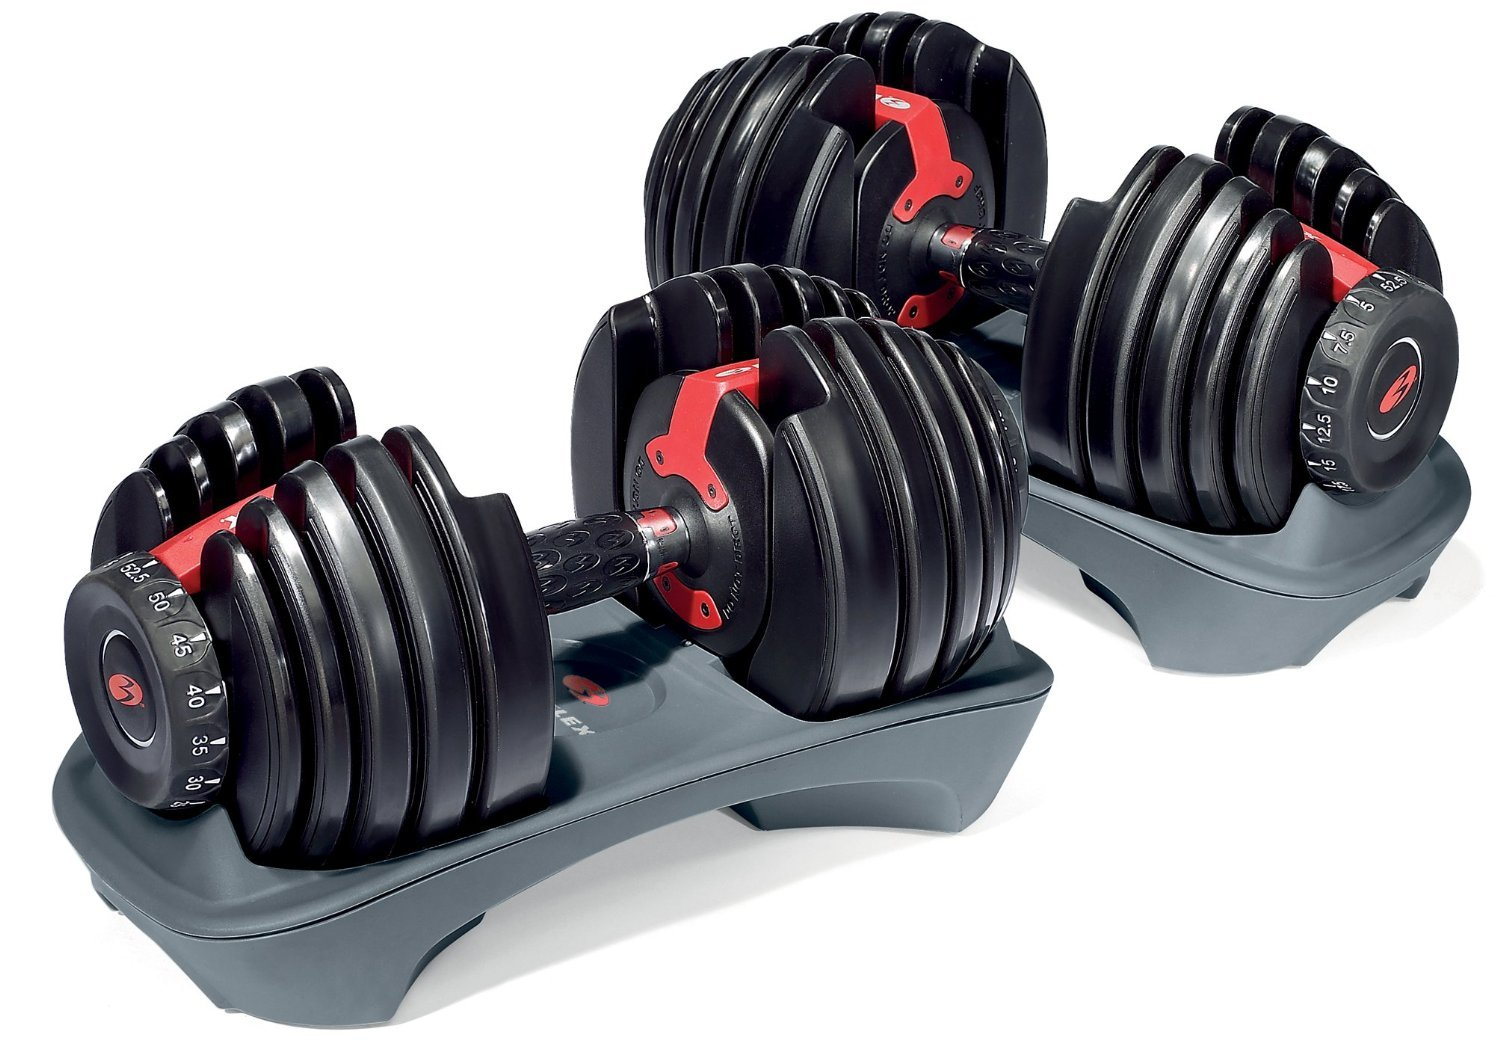 Bowflex SelectTech 552 Adjustable Dumbbells - What to Get your Dad for Christmas in 2016